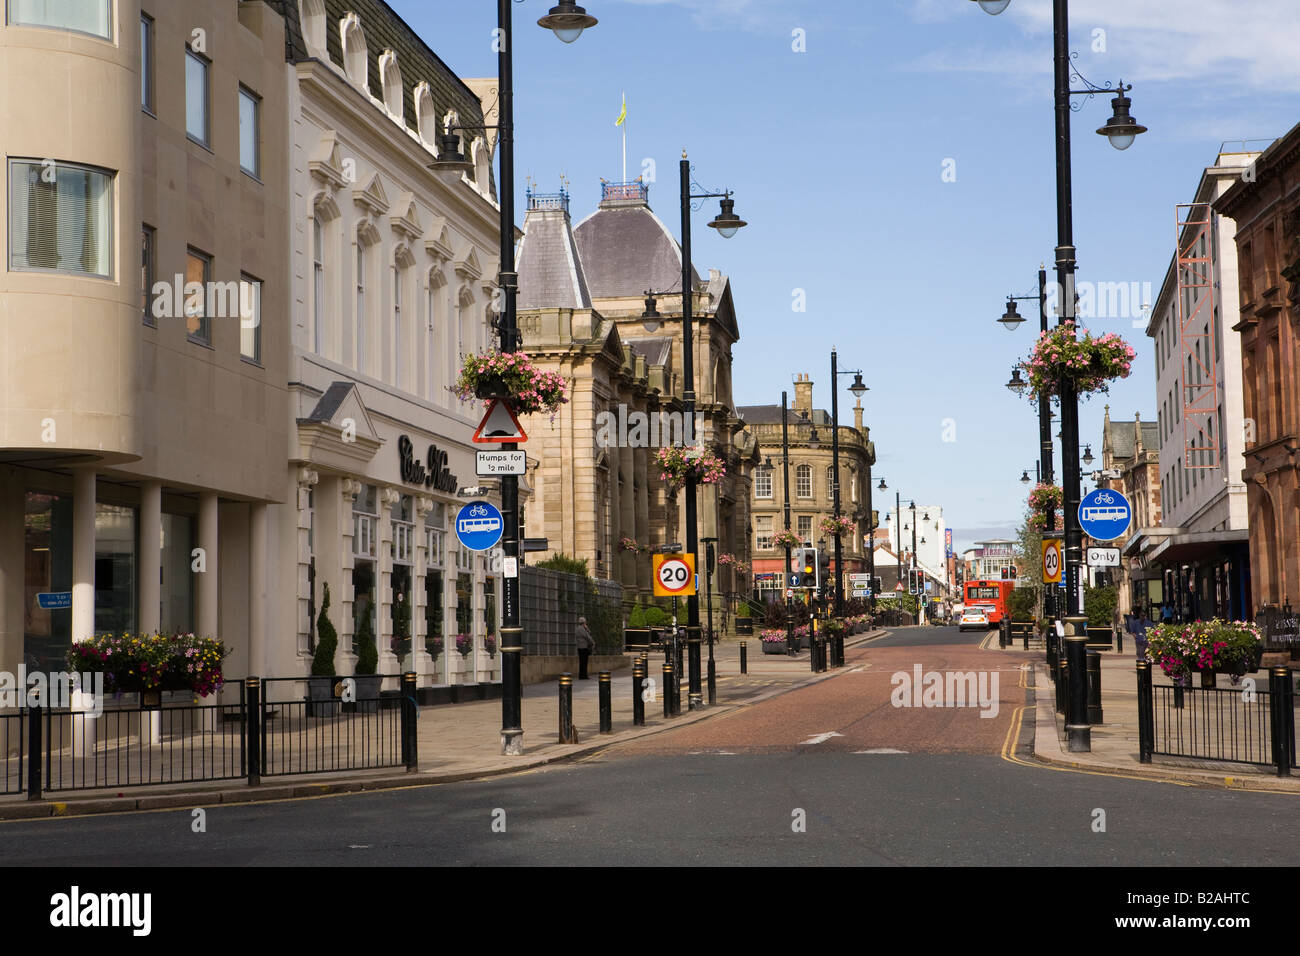 Sunderland City Centre Stock Photos & Sunderland City Centre Stock ...